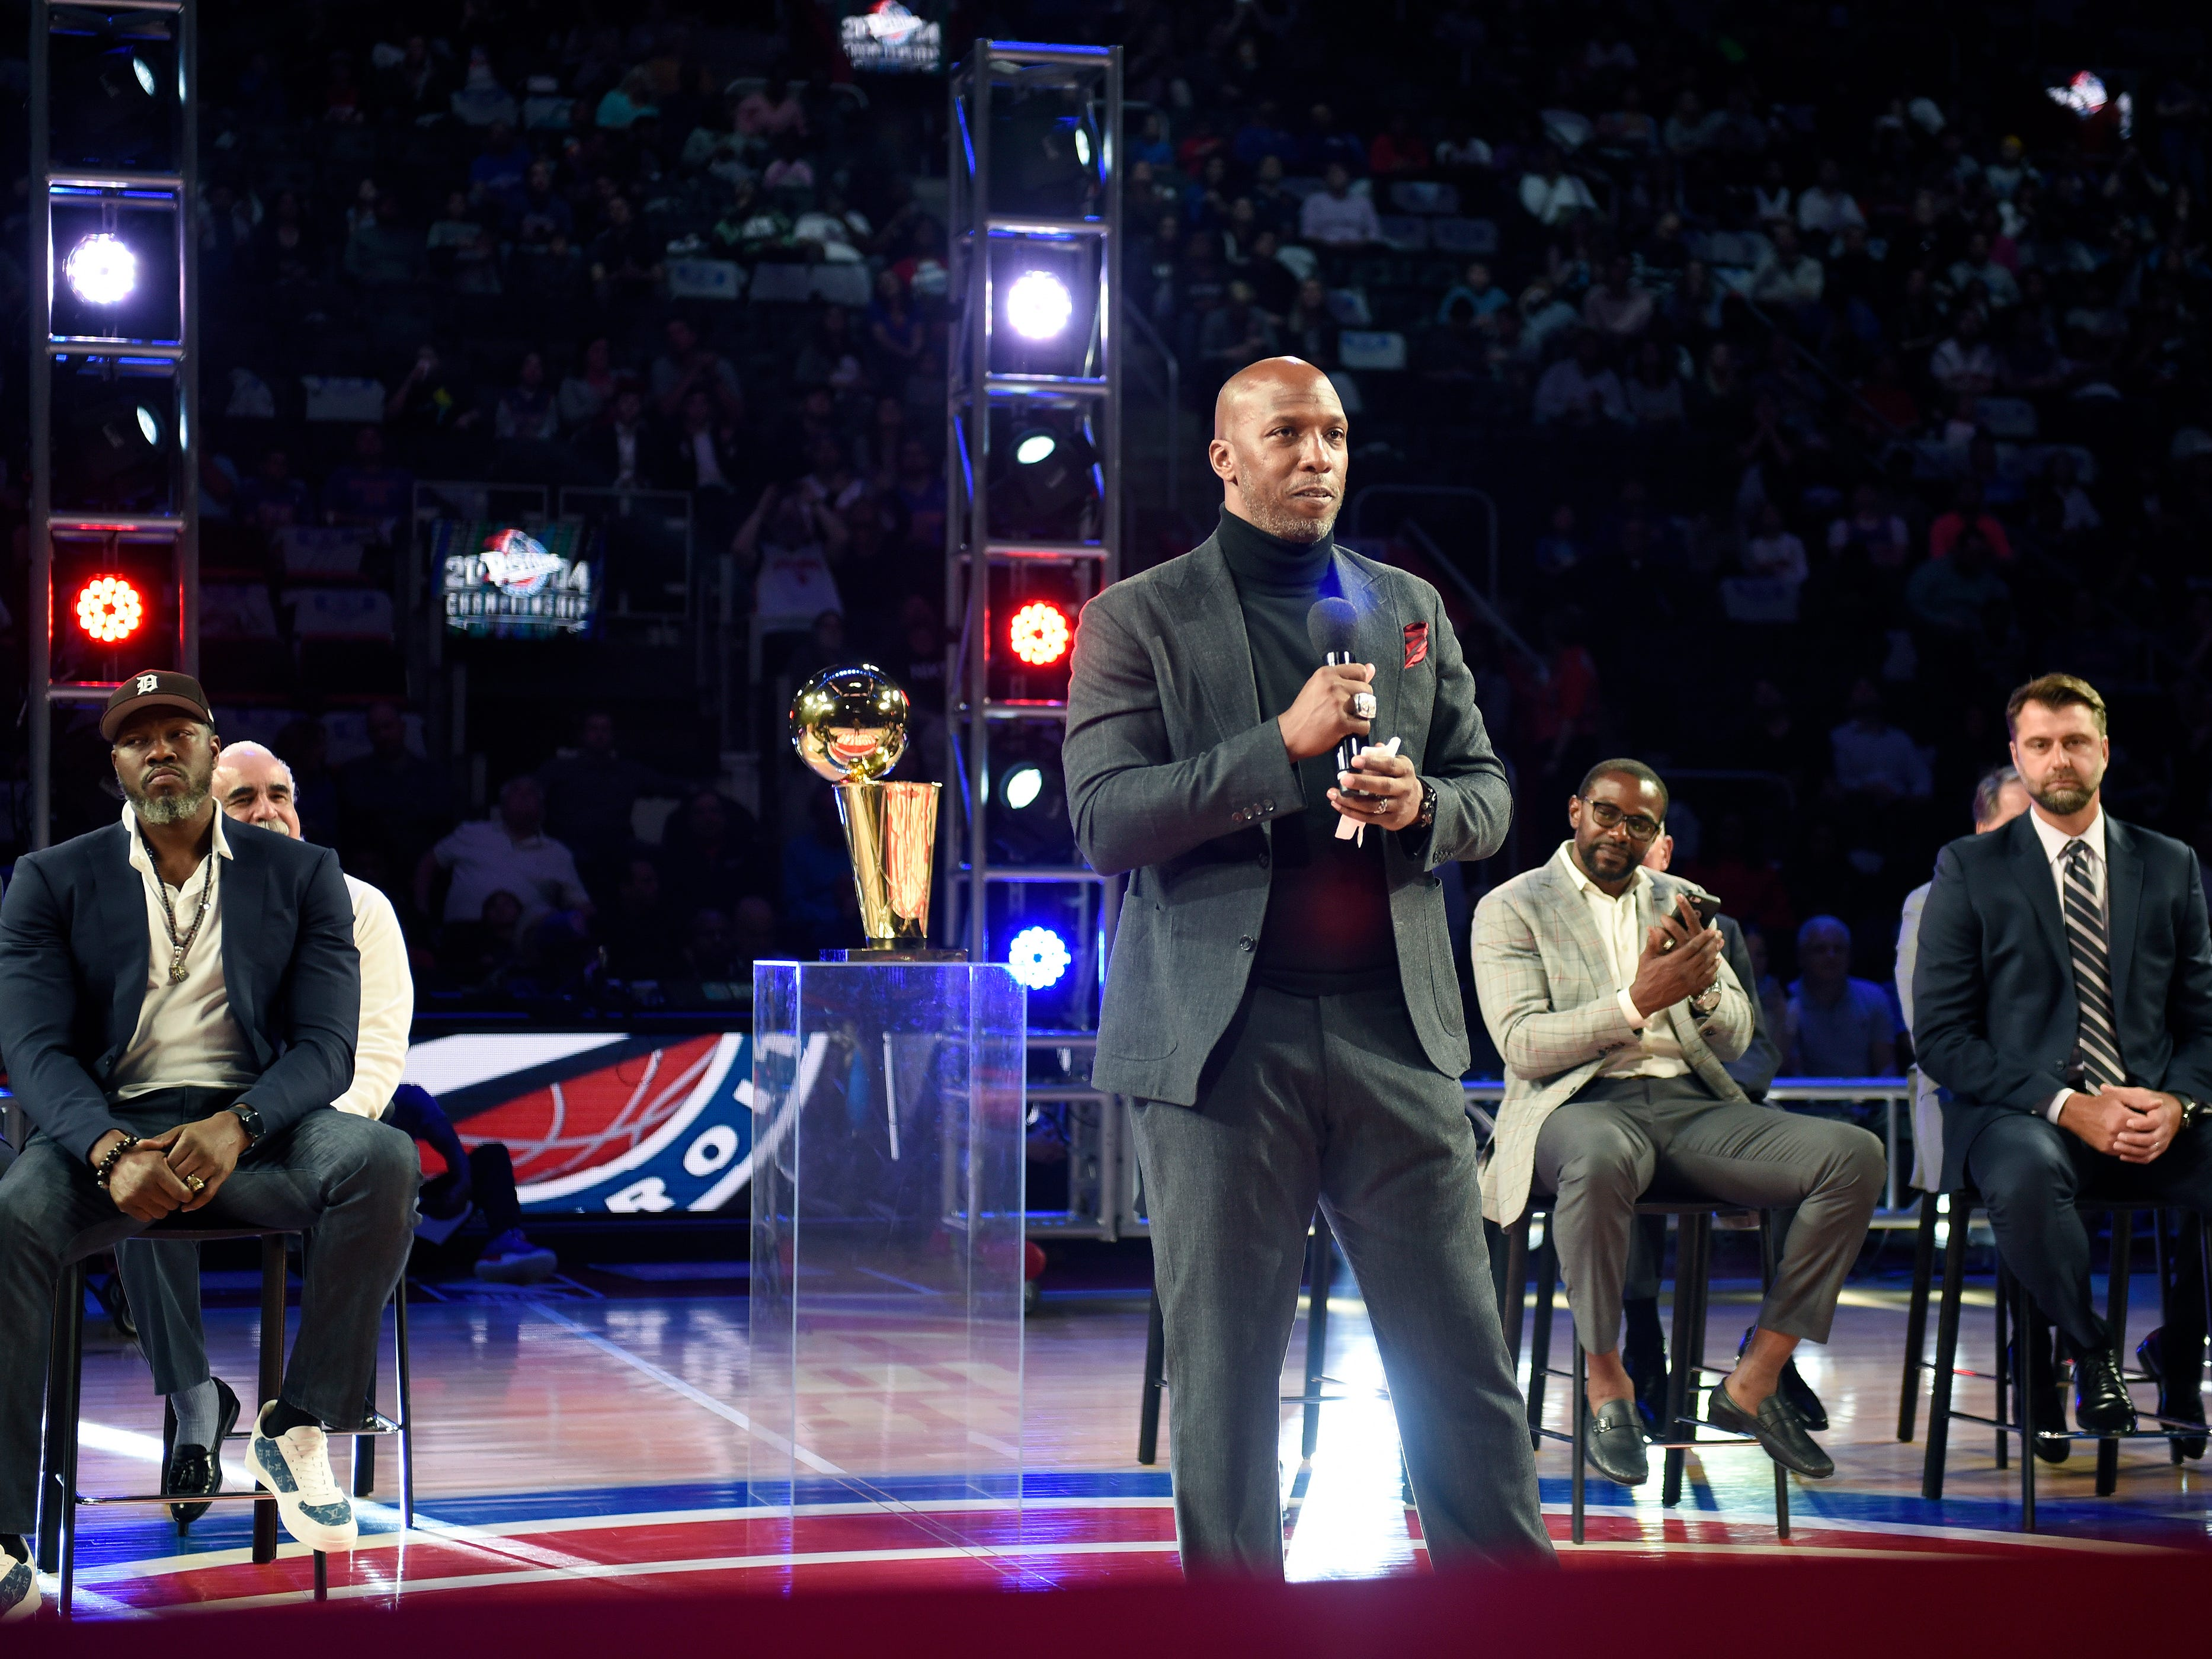 Former Piston Chauncey Billups gives his remarks during the halftime ceremony honoring the  2004 Championship team.